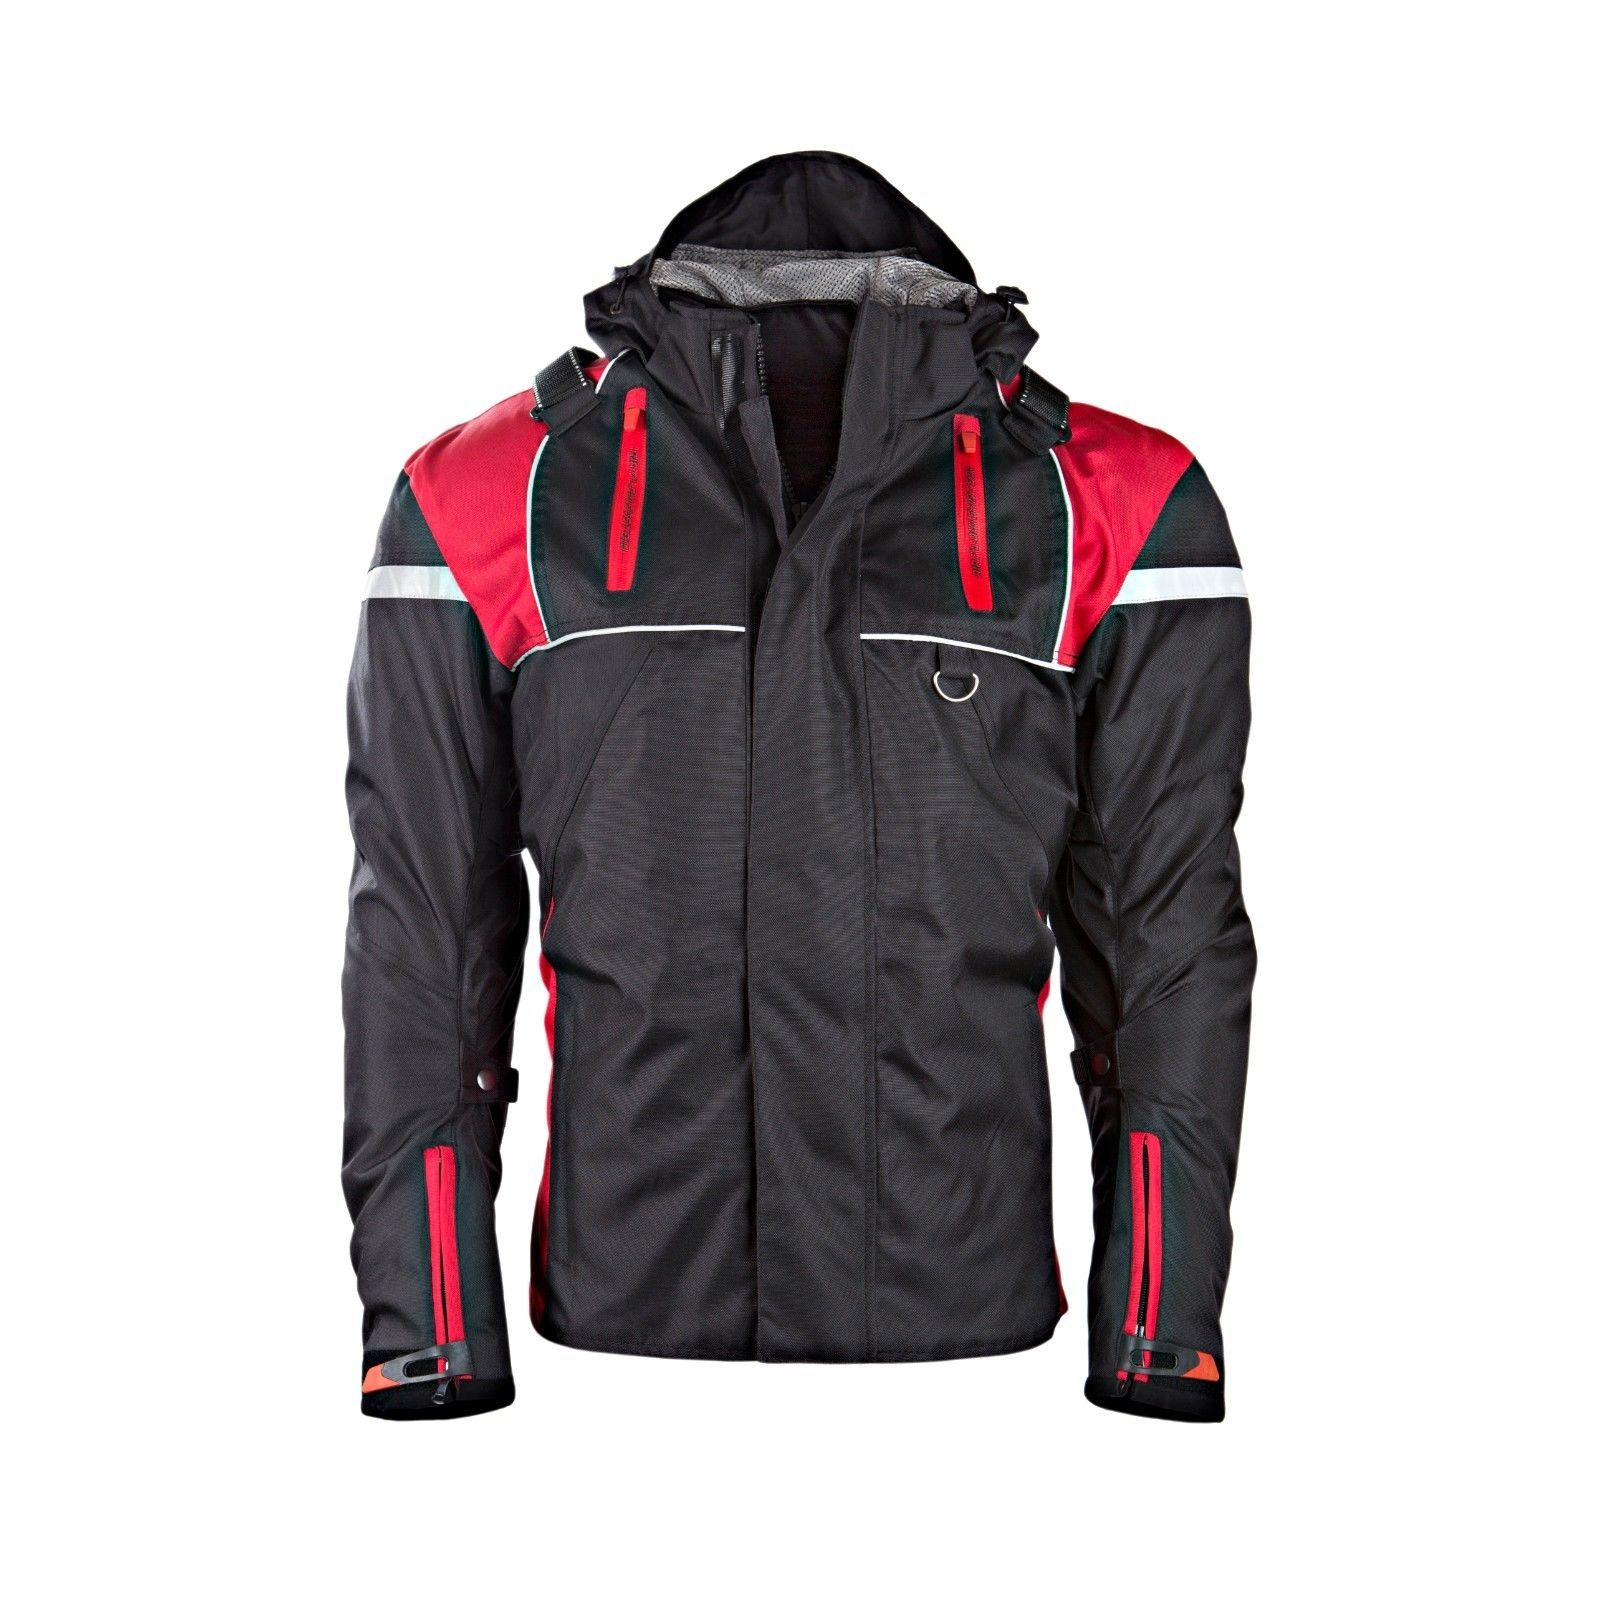 Mens Hivis Motorcycle Black Jacket Textile CE Armoured